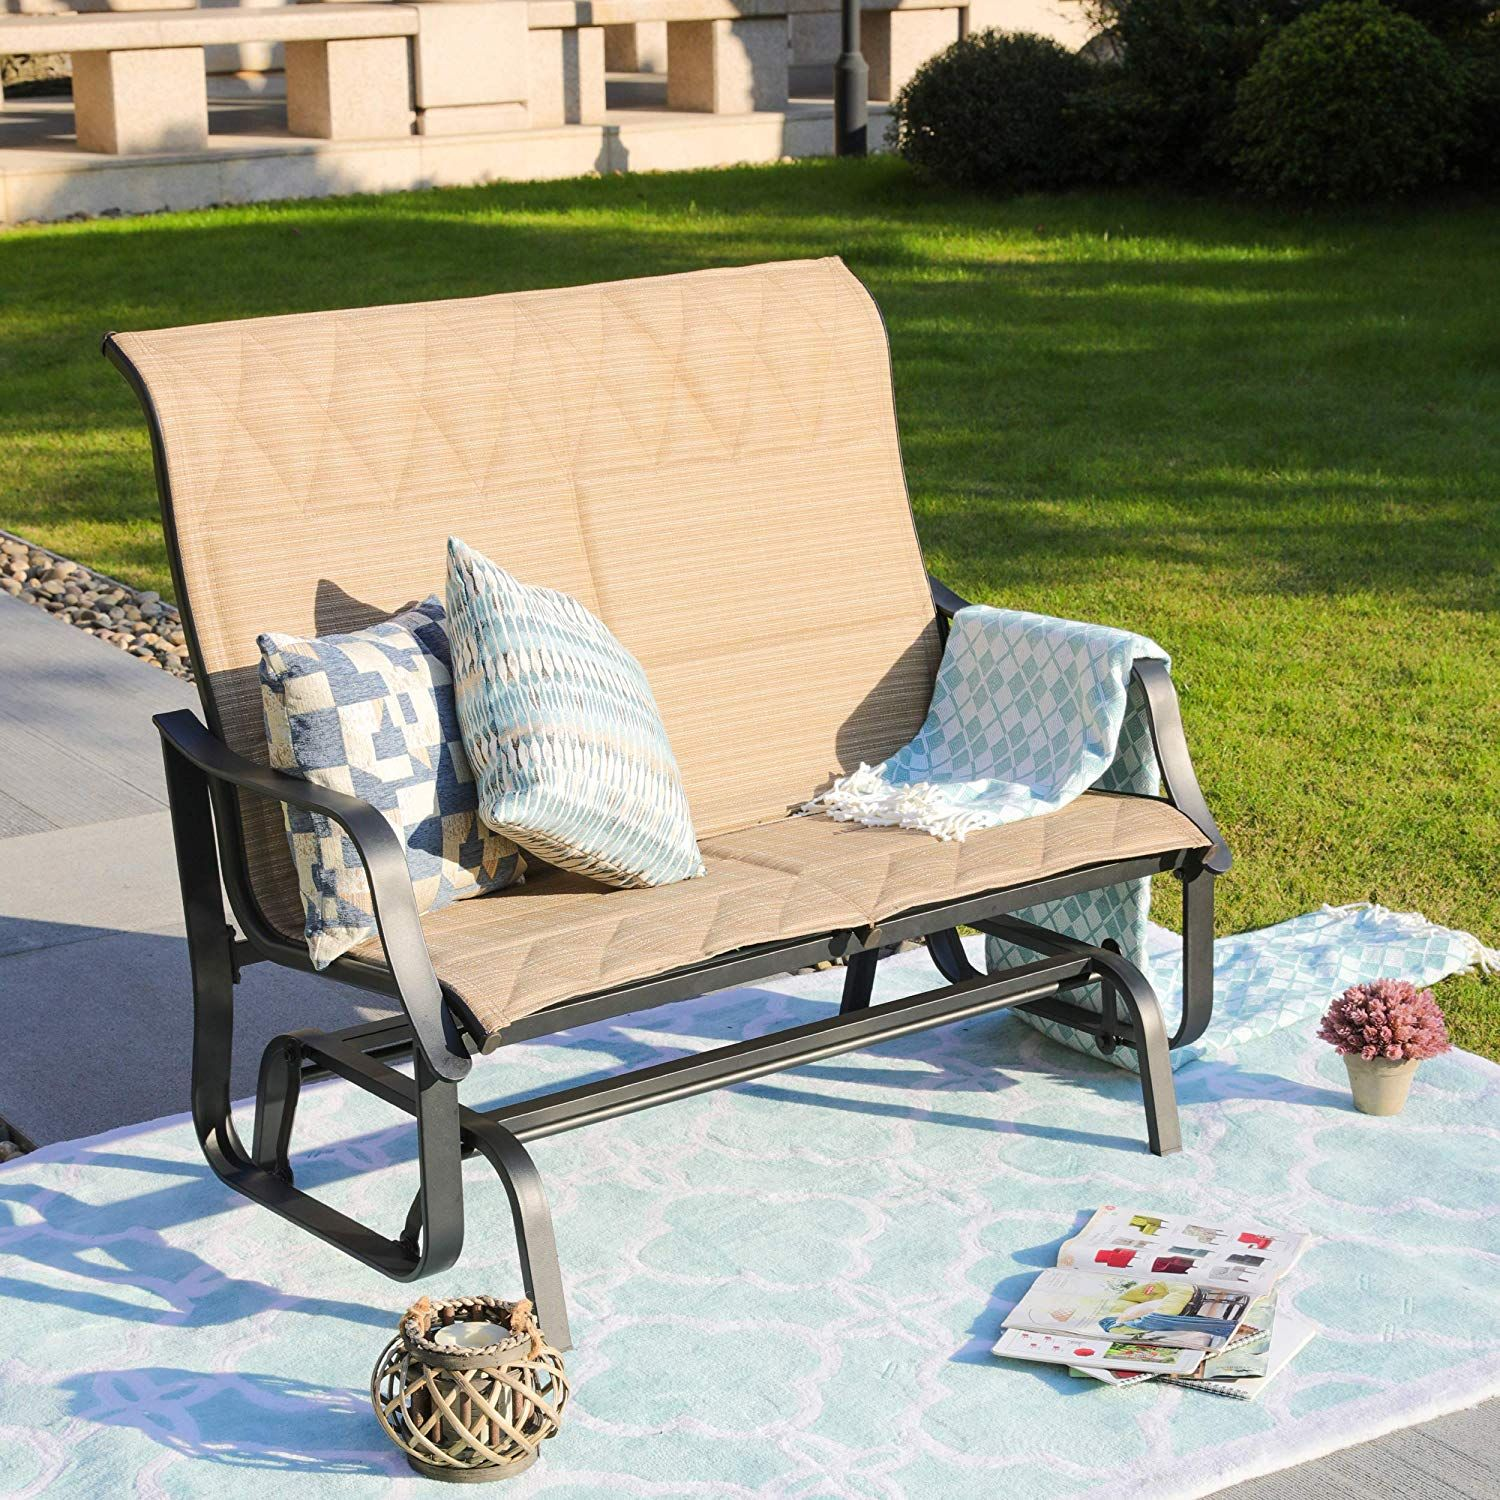 Home Patio Outdoor Glider Seat Bench 2 Person Swing Loveseat Furniture Rocker Lounge Chair Beige Buy Outdoor Furniture Love Seat Outdoor Deck Furniture